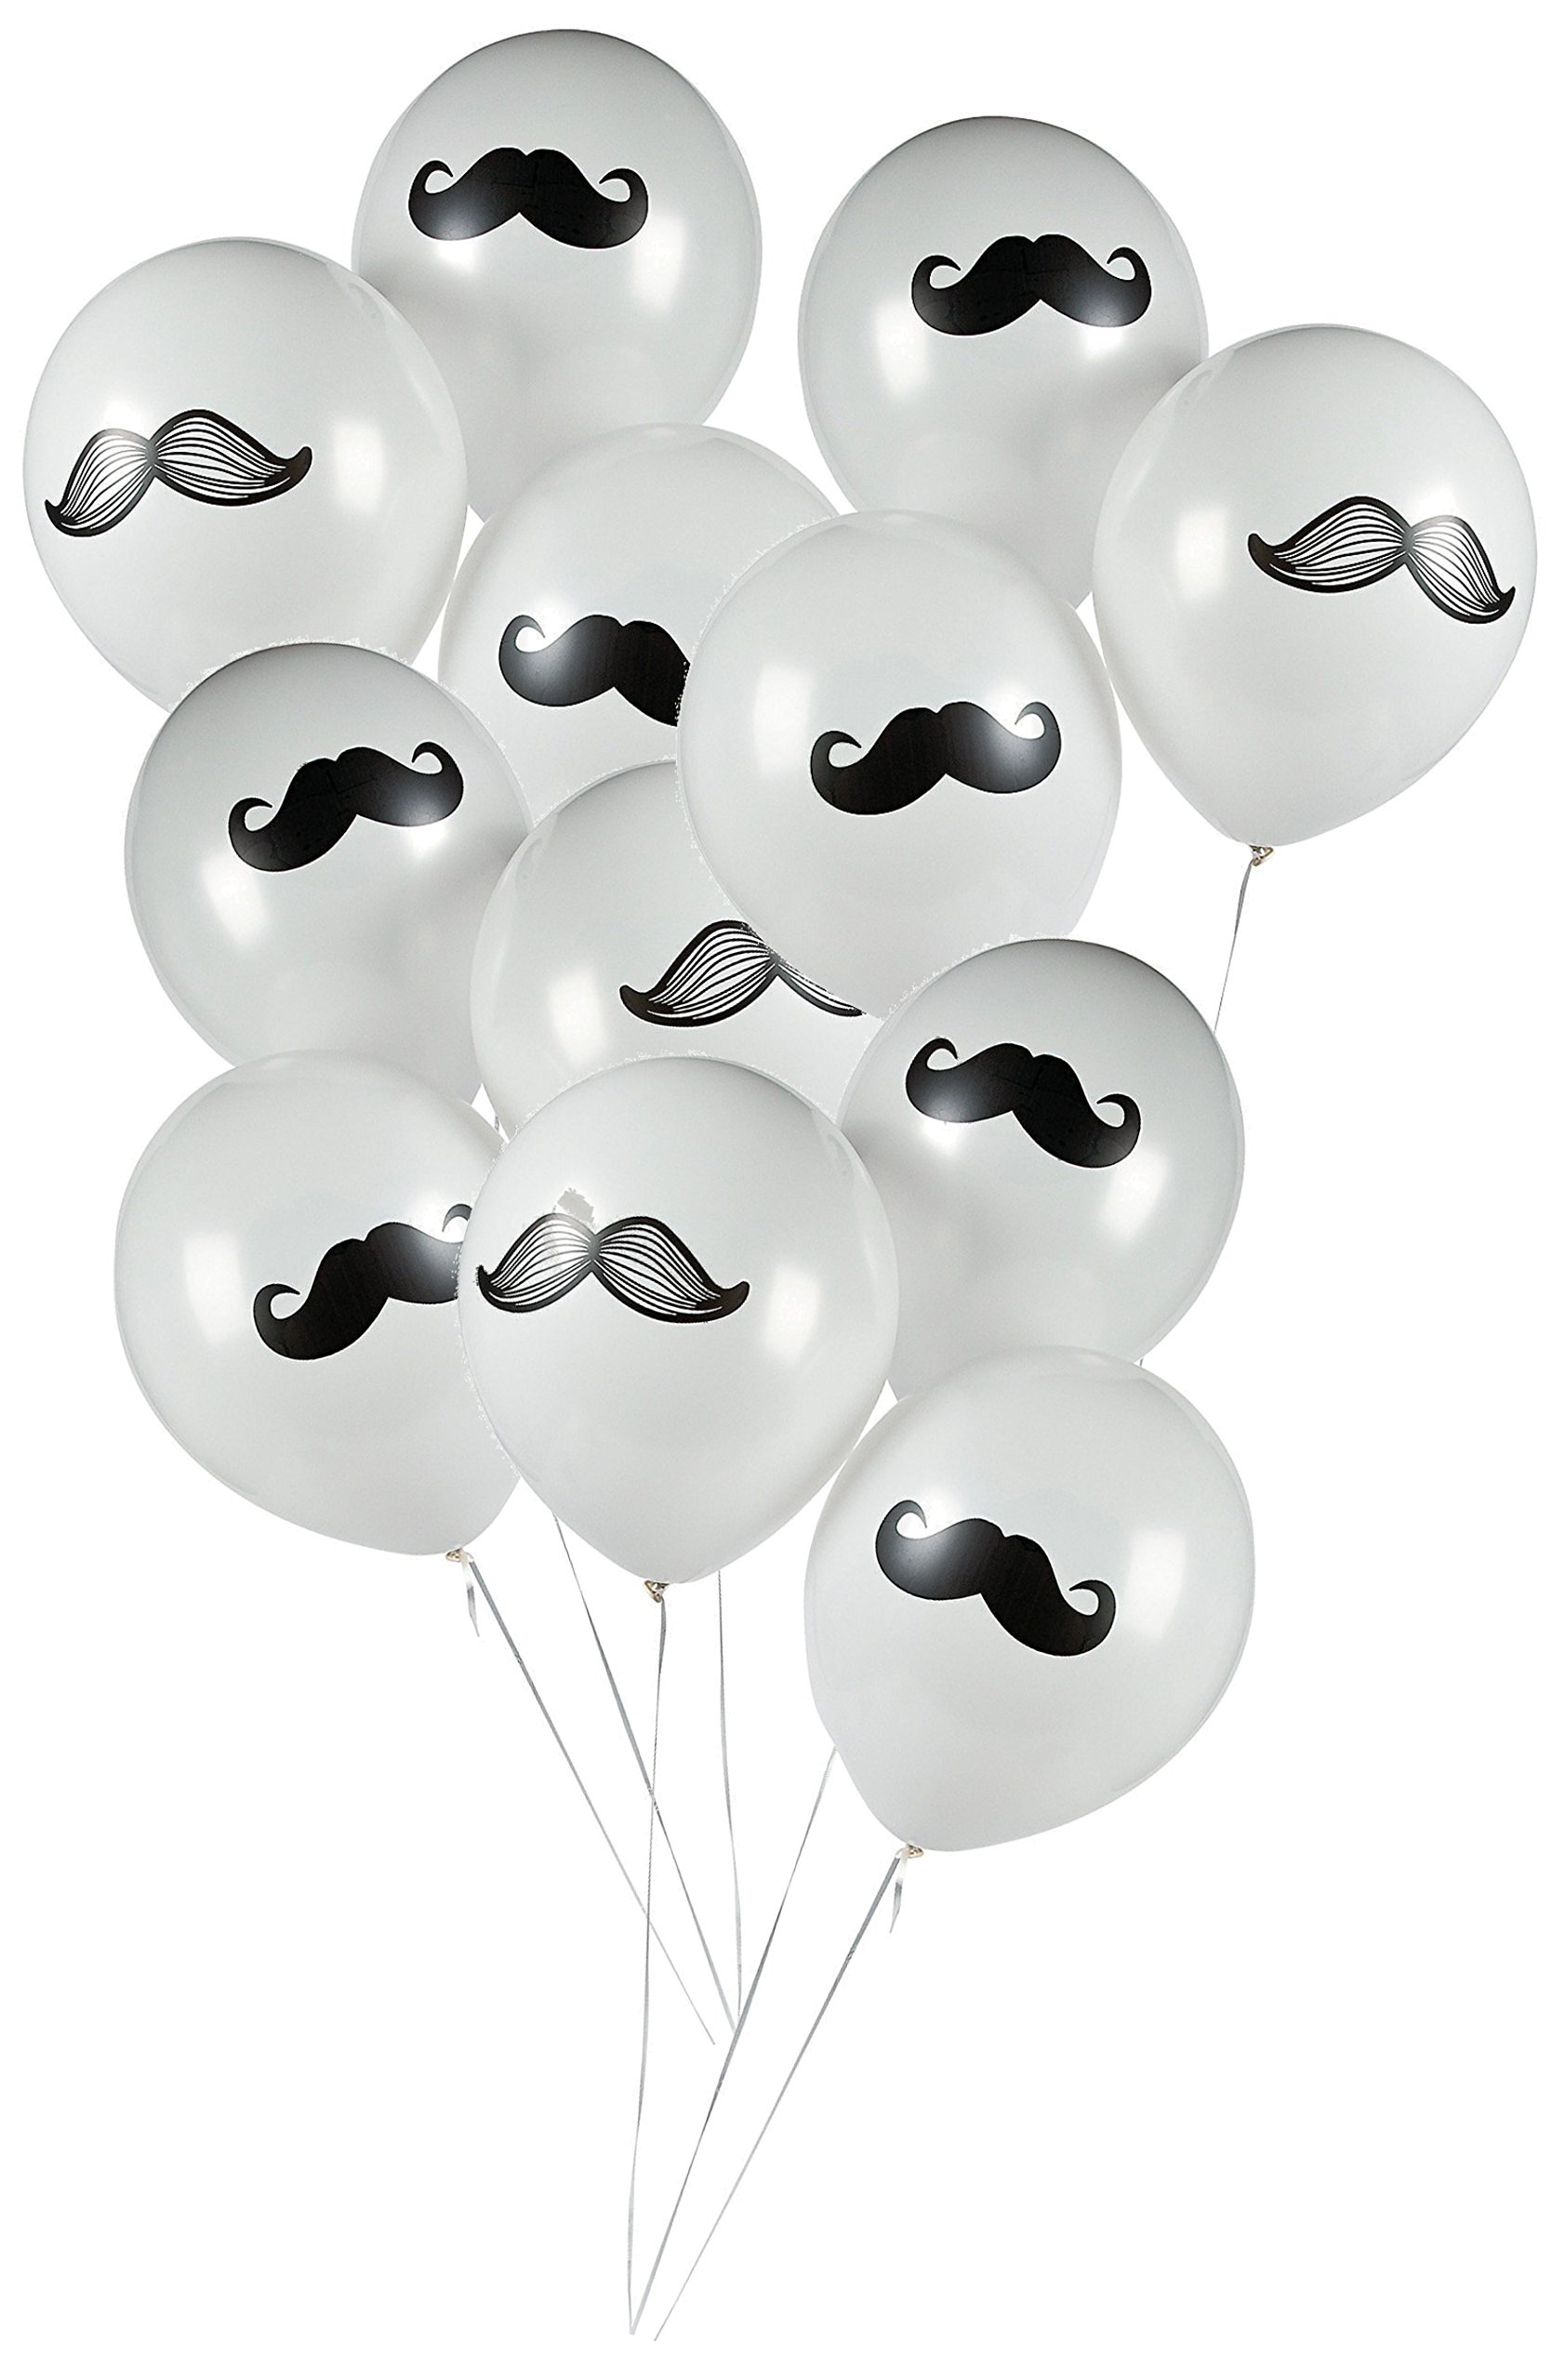 Mustache Baby Shower Birthday Party Supply Bundle Bulk Pack Includes 12 Swirl Decorations, 50 Mustache Food Picks, 12 Latex Balloons, and 1 Mustache Table Cover (BONUS! Matching Party Straw Pack) by Everyday Party Bundles (Image #2)